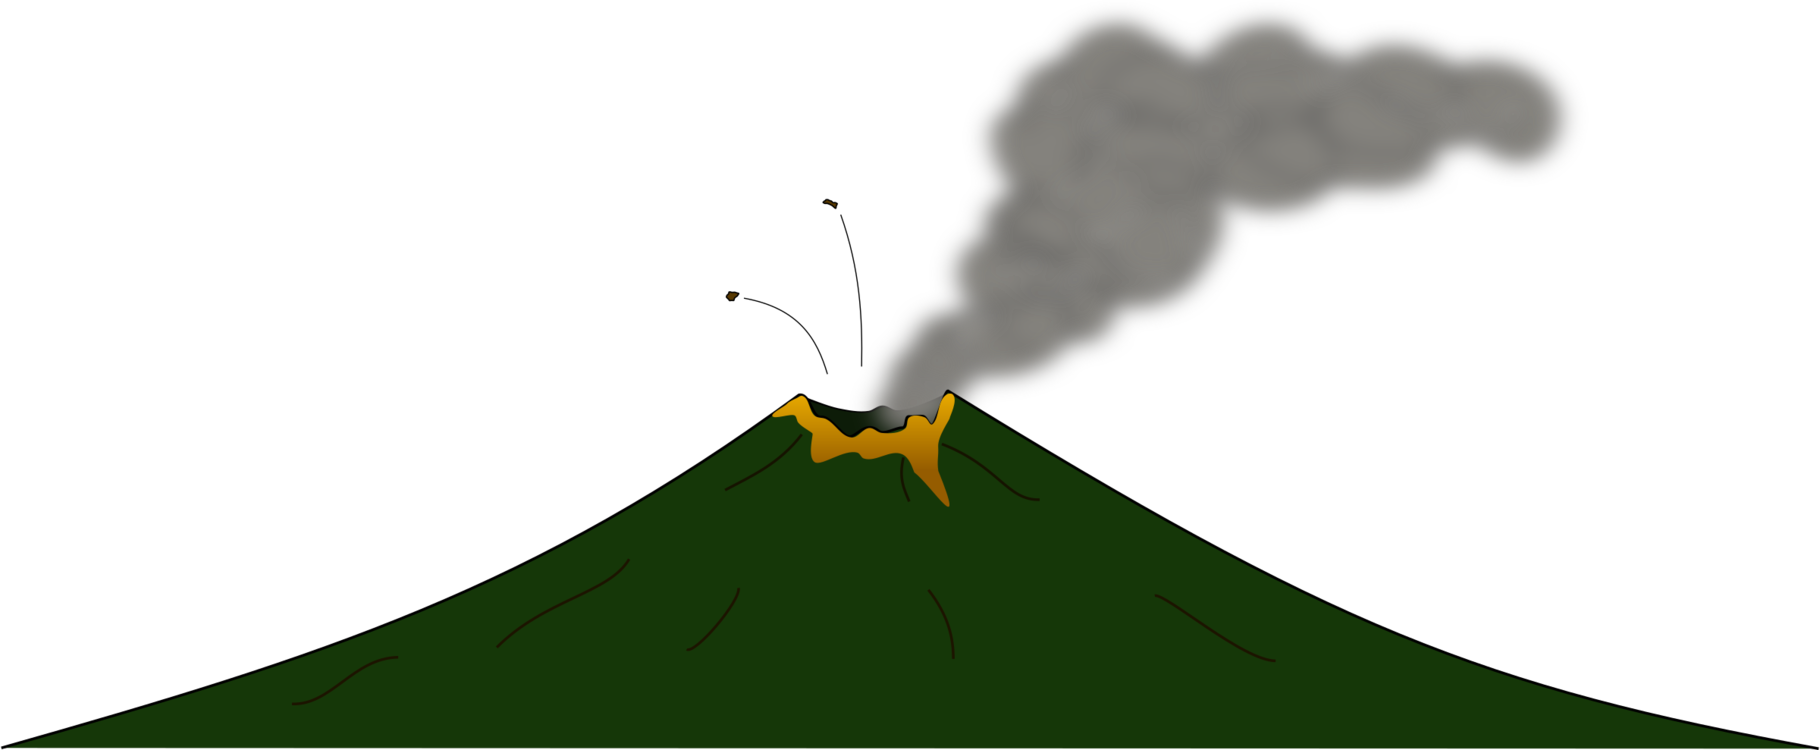 Volcanoes drawing volcanic mountain. Mayon volcano lava arenal